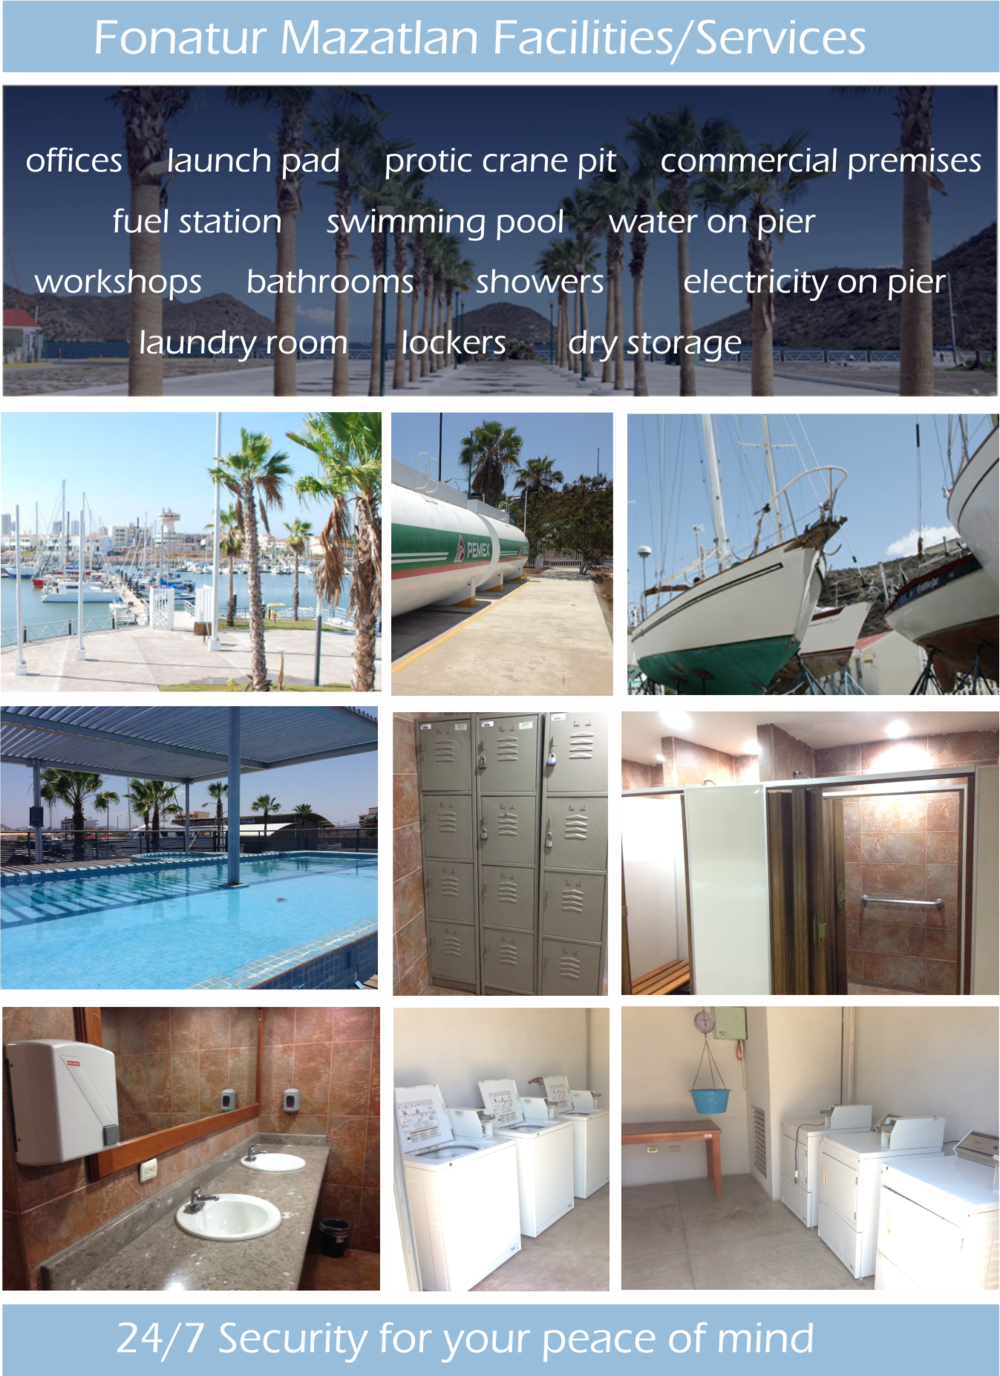 Super clean and comfortable showers, bathrooms & laundry facilities are awaiting your arrival in Mazatlan Mexico Fonatur Marina.